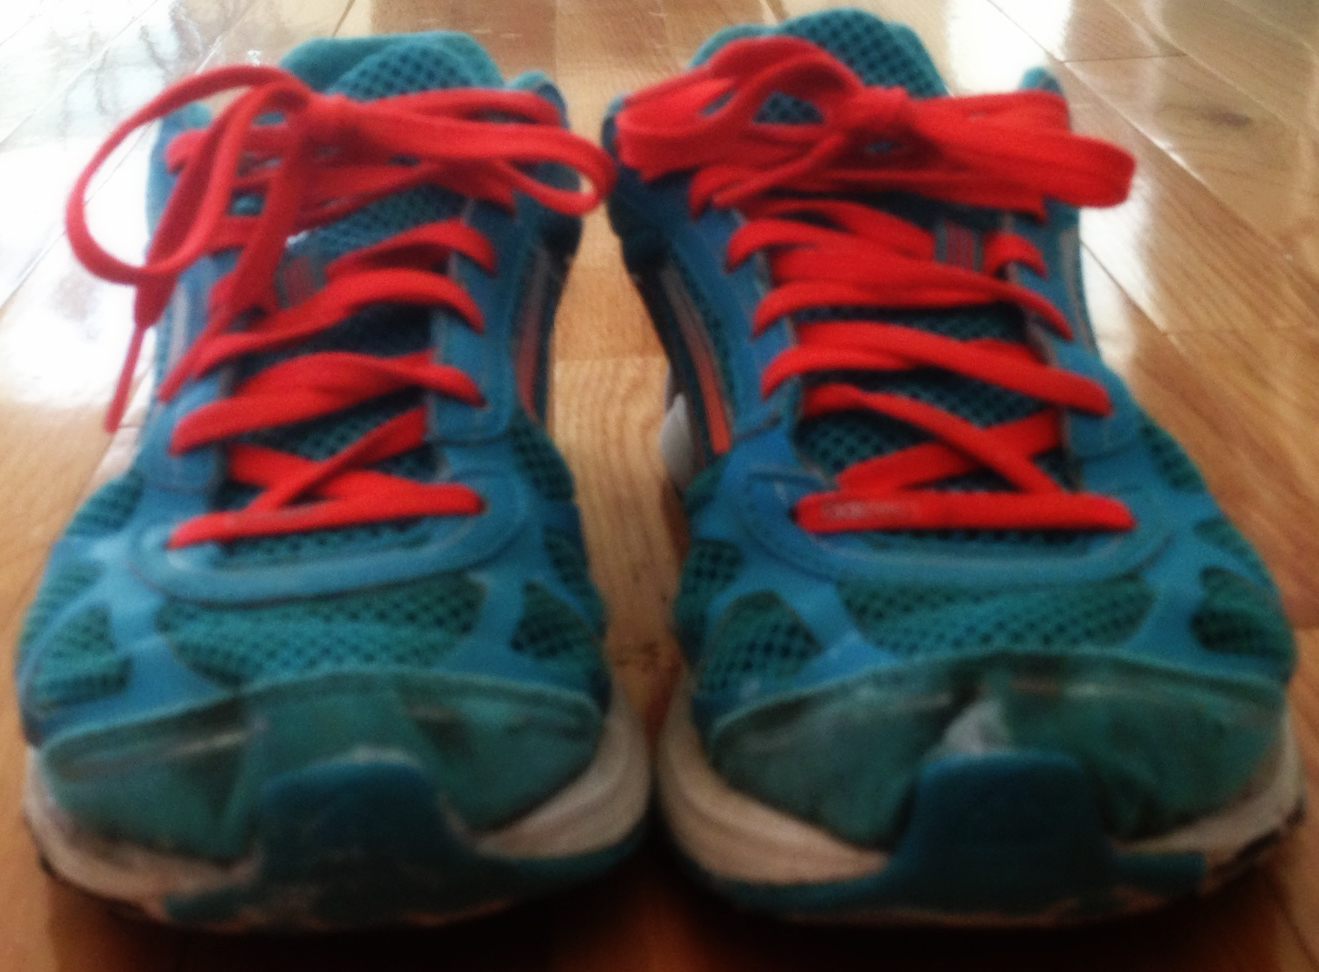 A Pair of Jogging Shoes for Jogging in Place